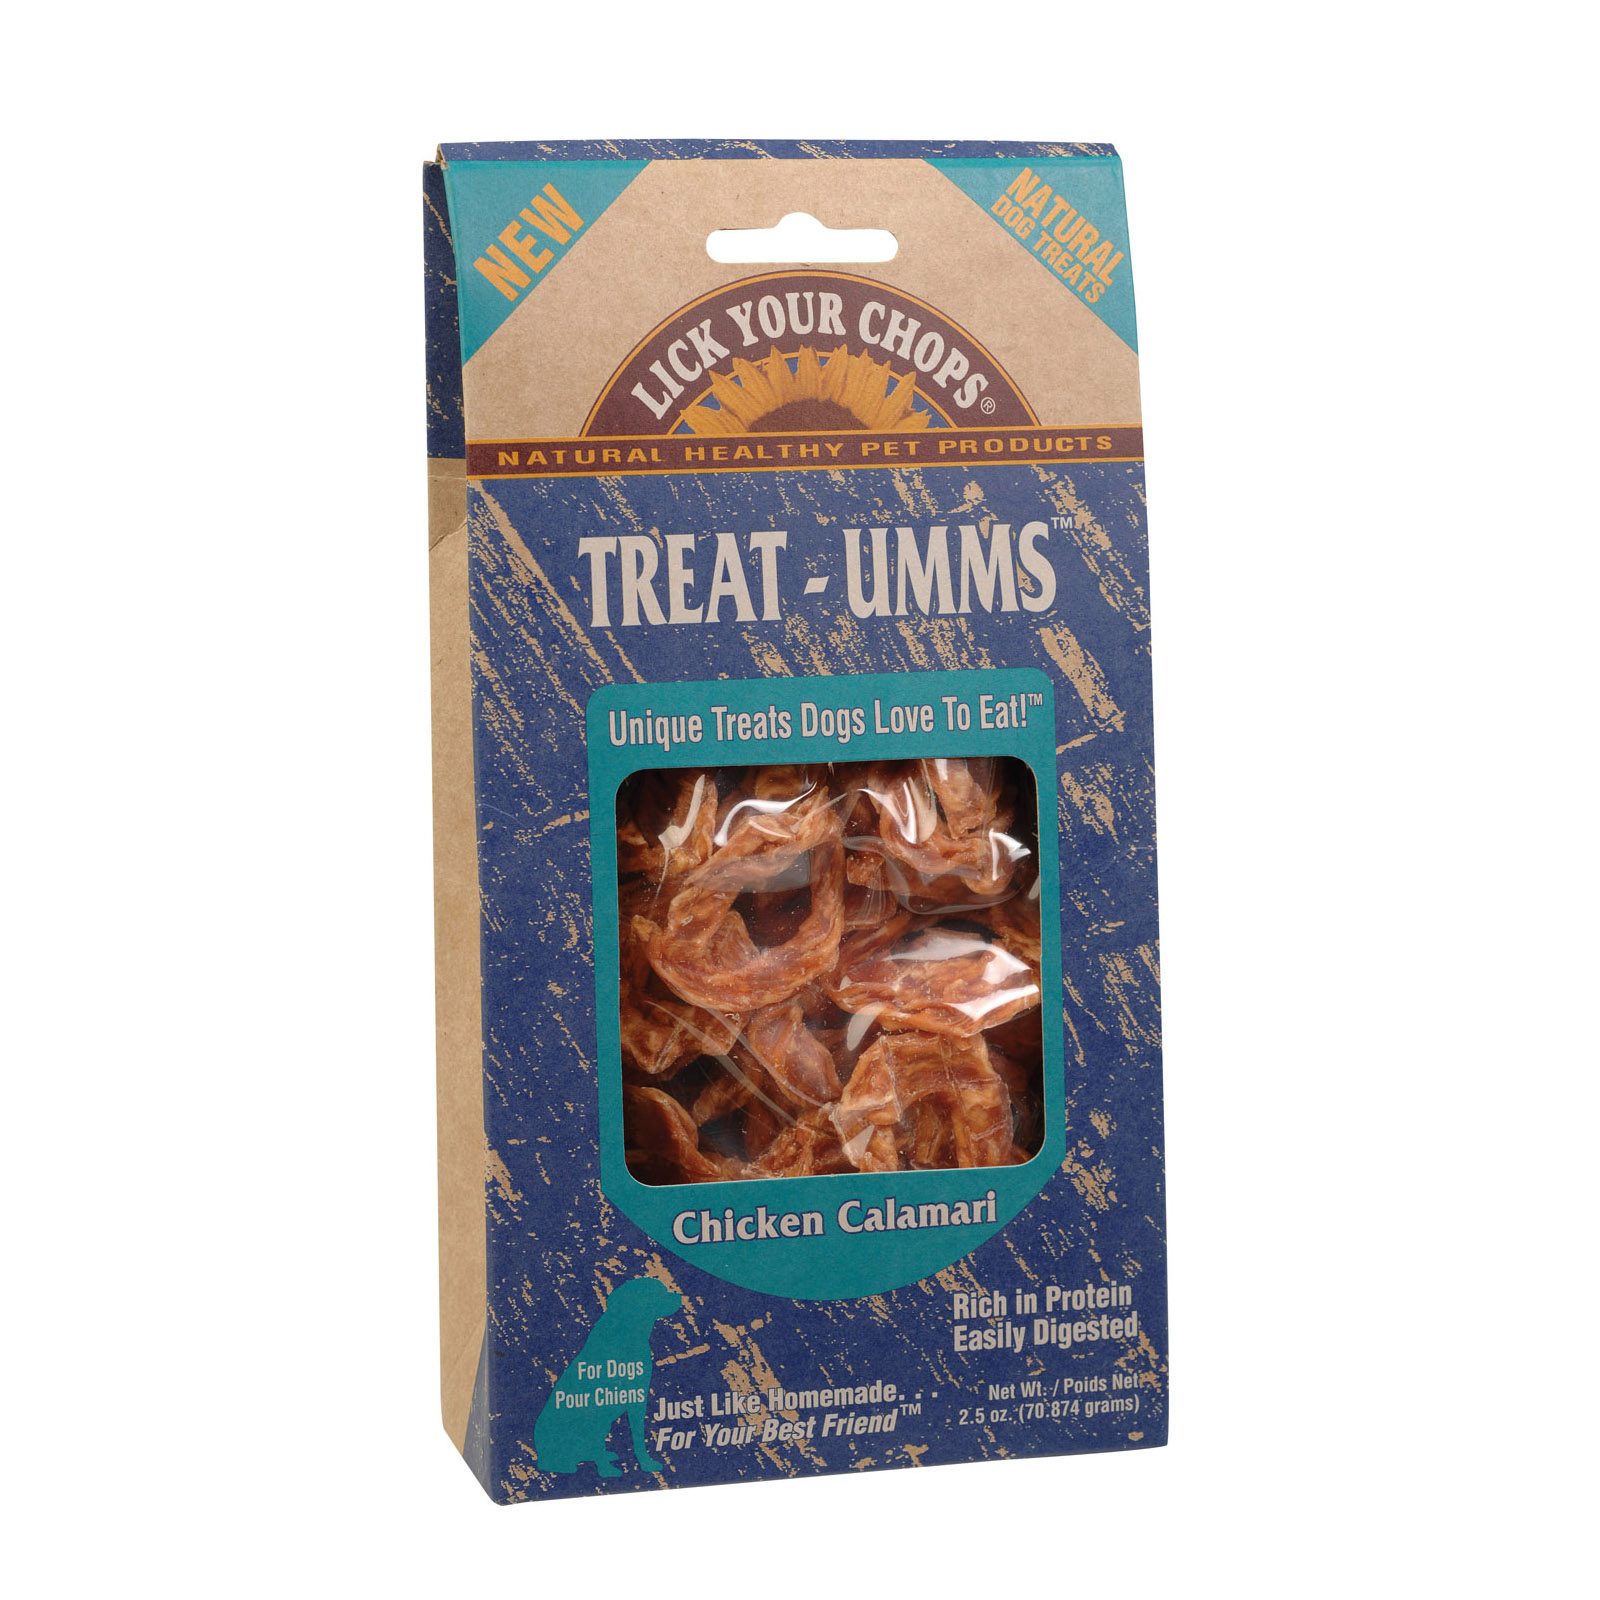 Lick Your Chops Treat - Umms Dog Treats - Chicken Calamari - Case Of 6 - 2.5 Oz.